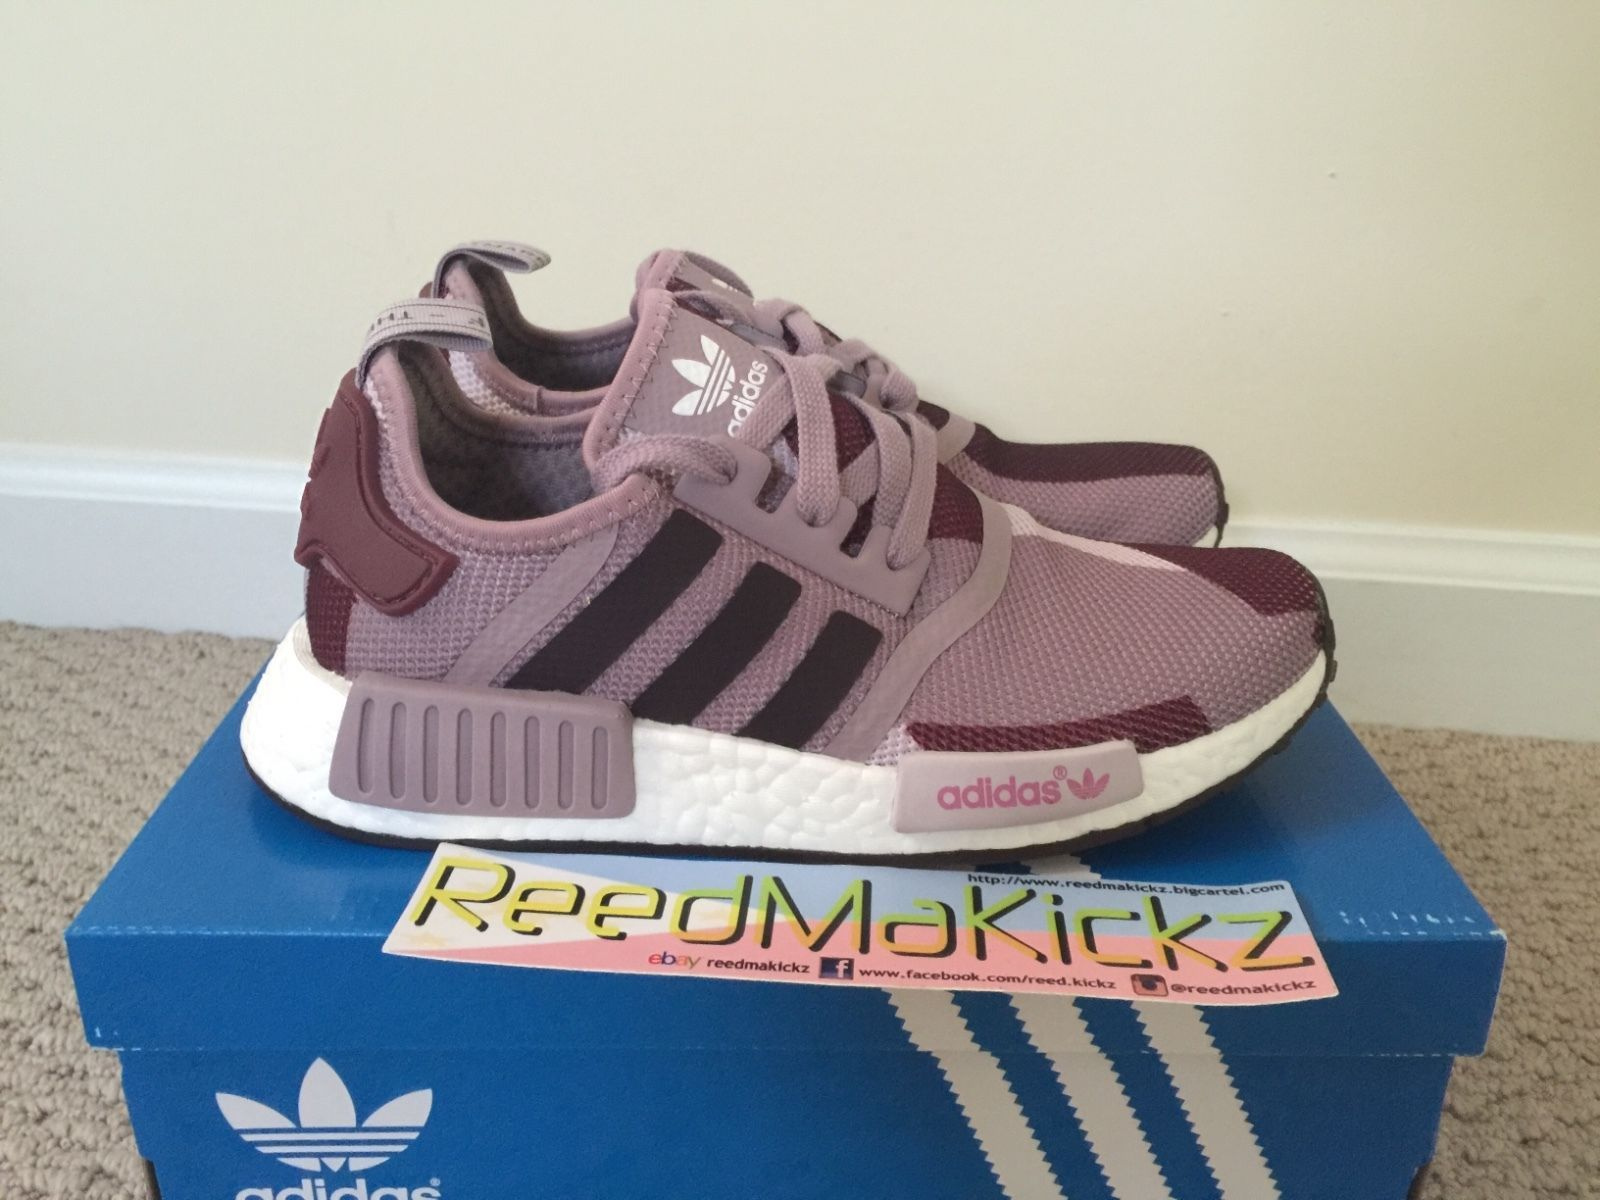 07392aa6f75db Adidas NMD R1 Blanch Purple Womens sizes S75721 in 2019